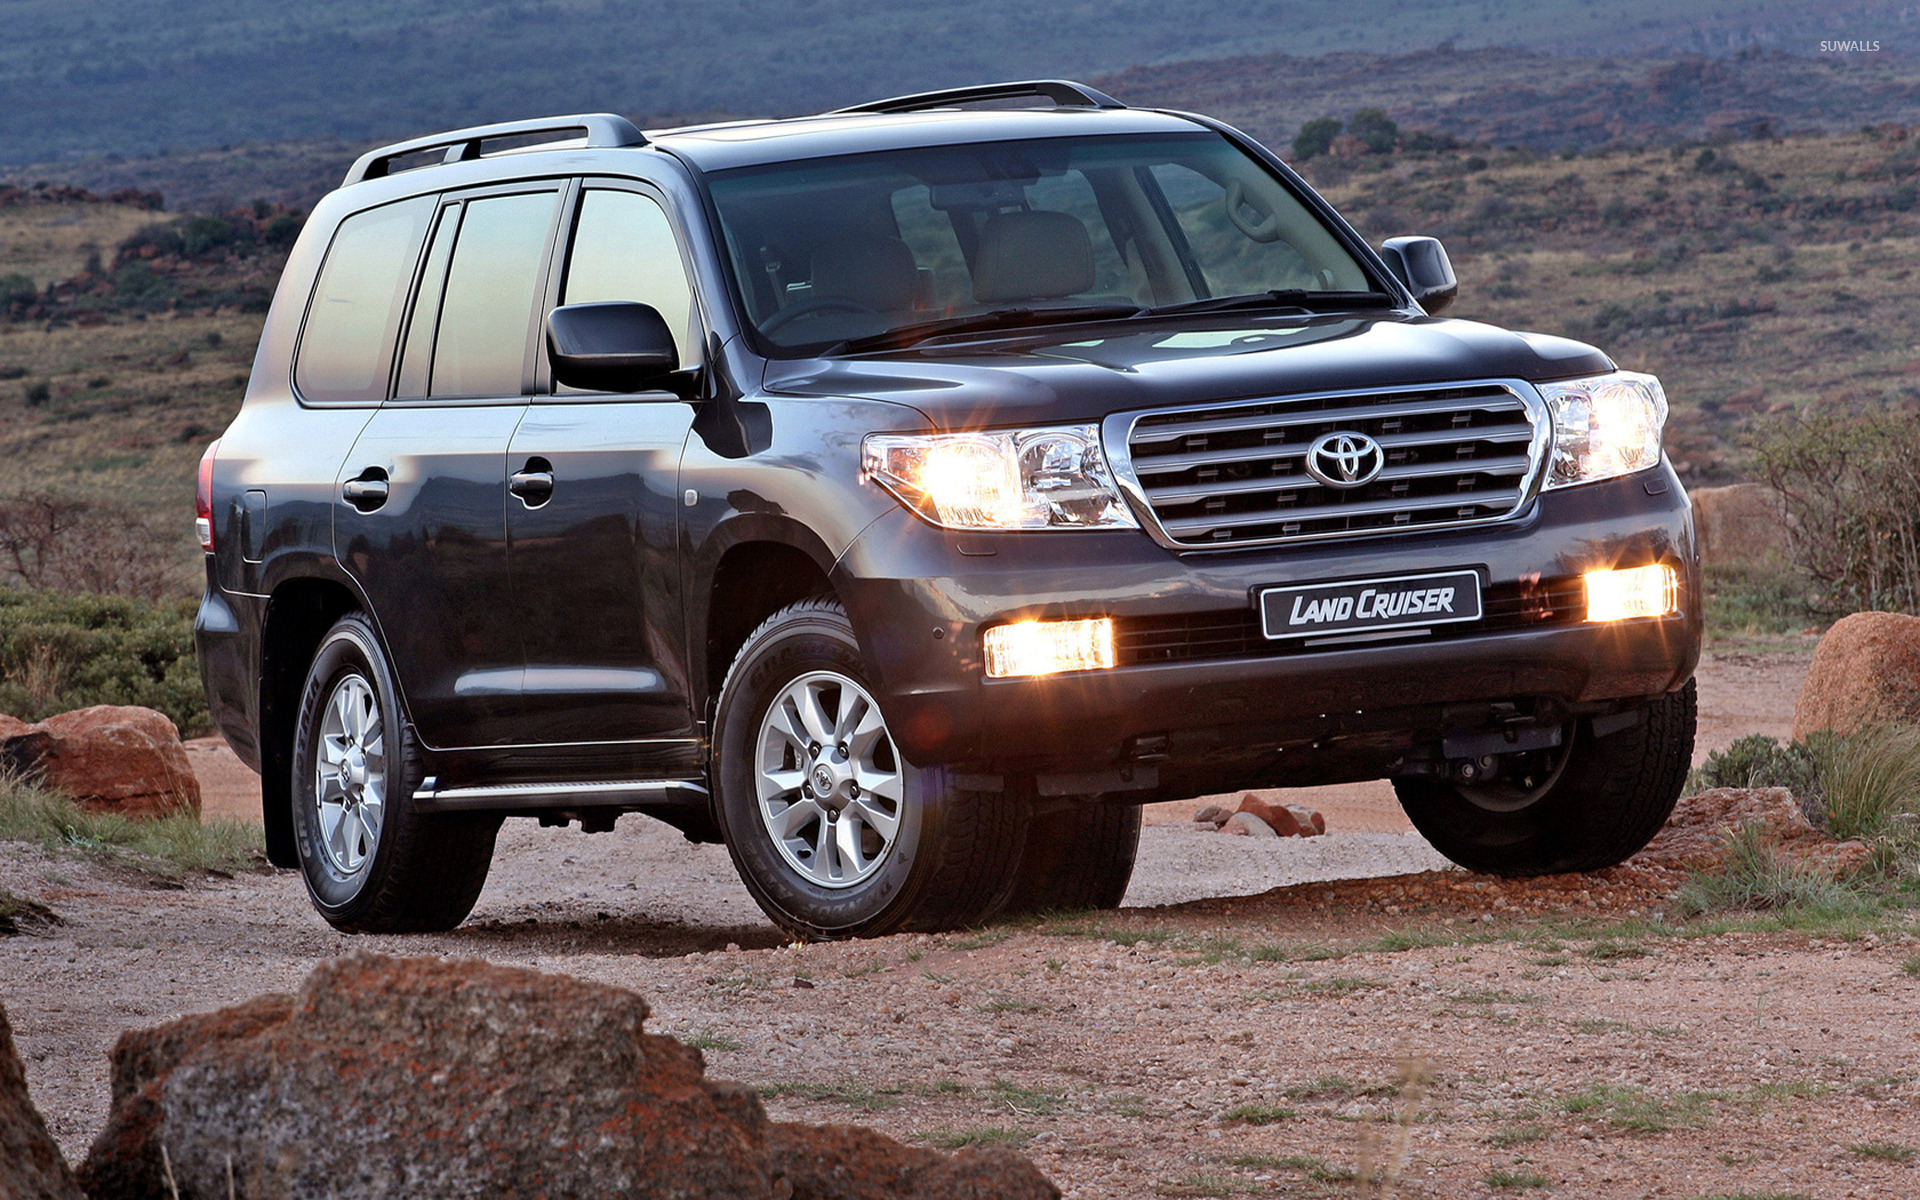 Toyota Land Cruiser [6] Wallpaper 1920x1200 Jpg